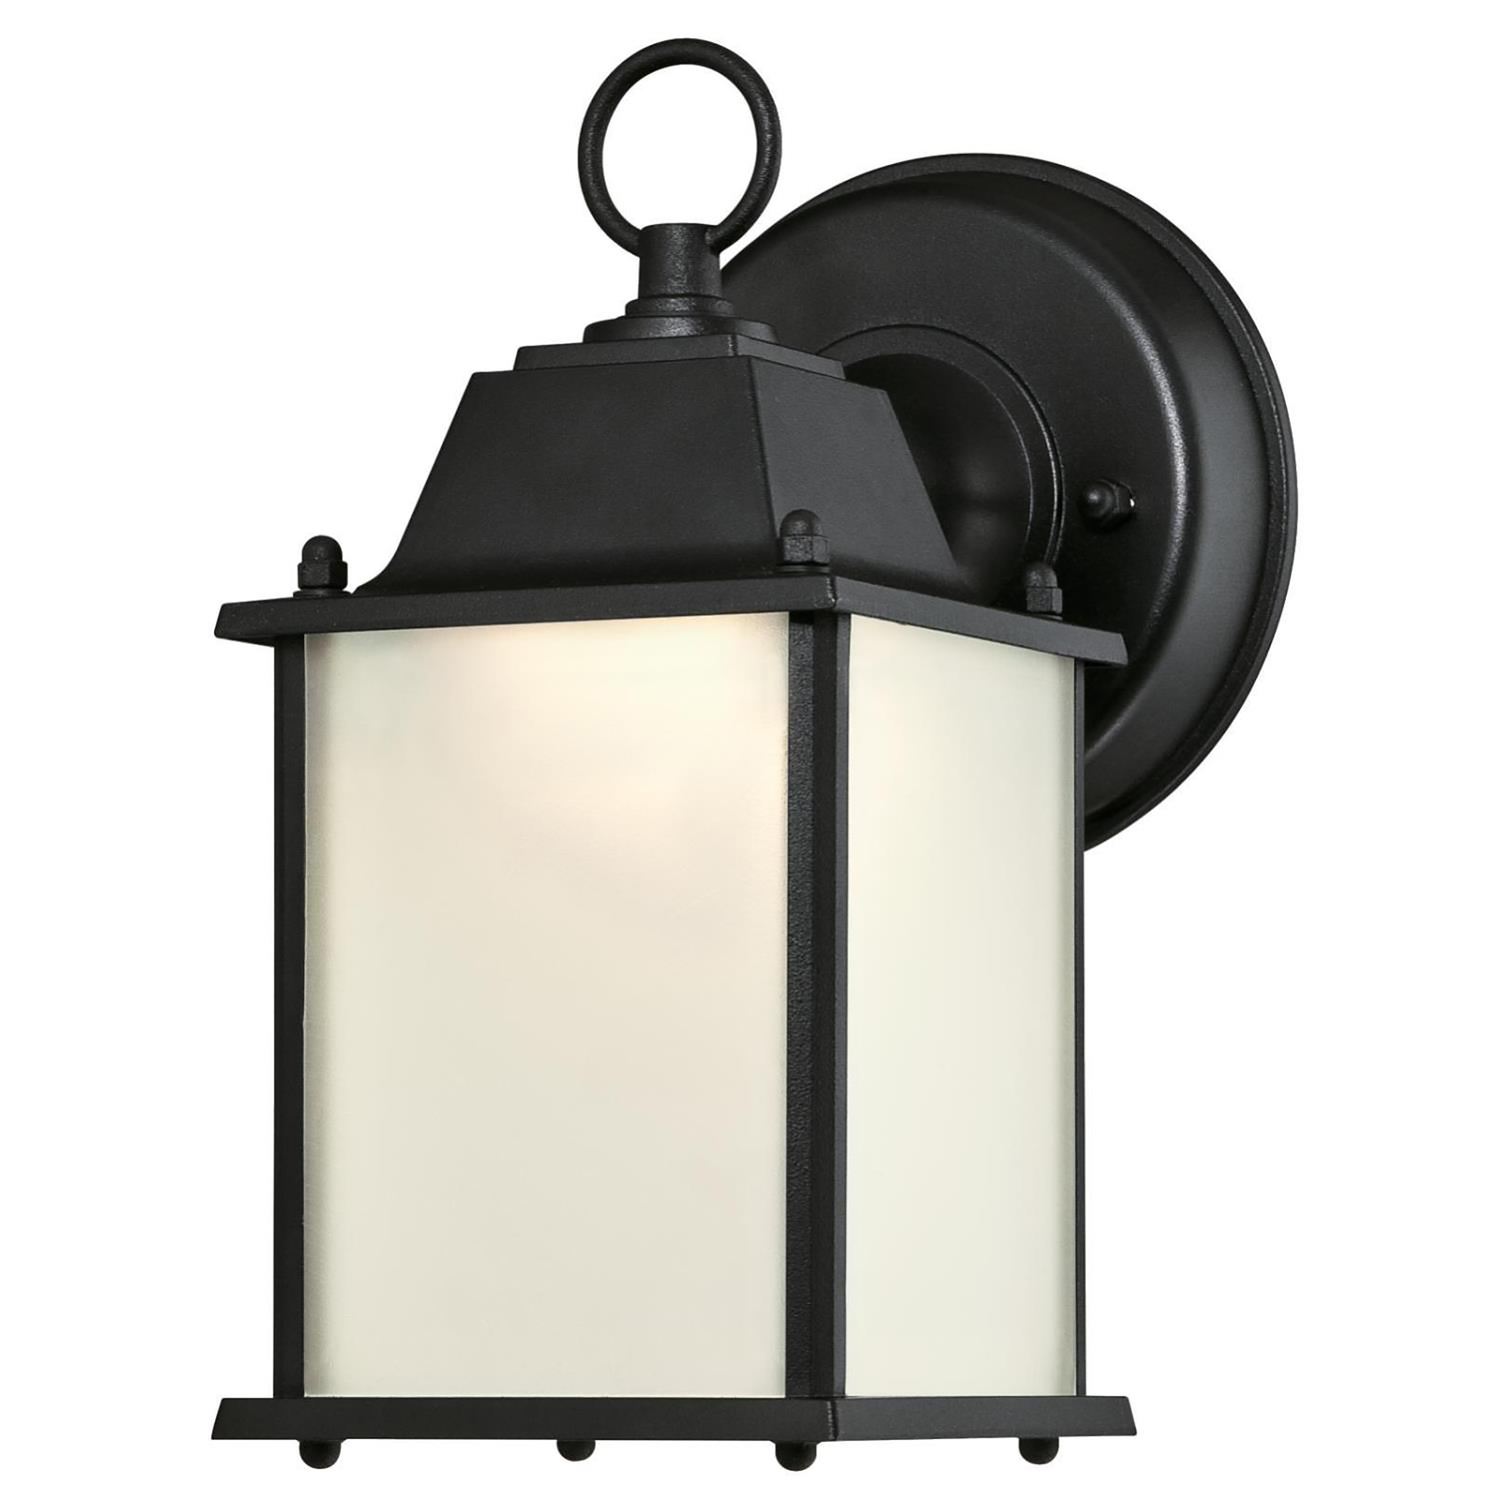 Westinghouse  Textured  Switch  LED  Lantern Fixture